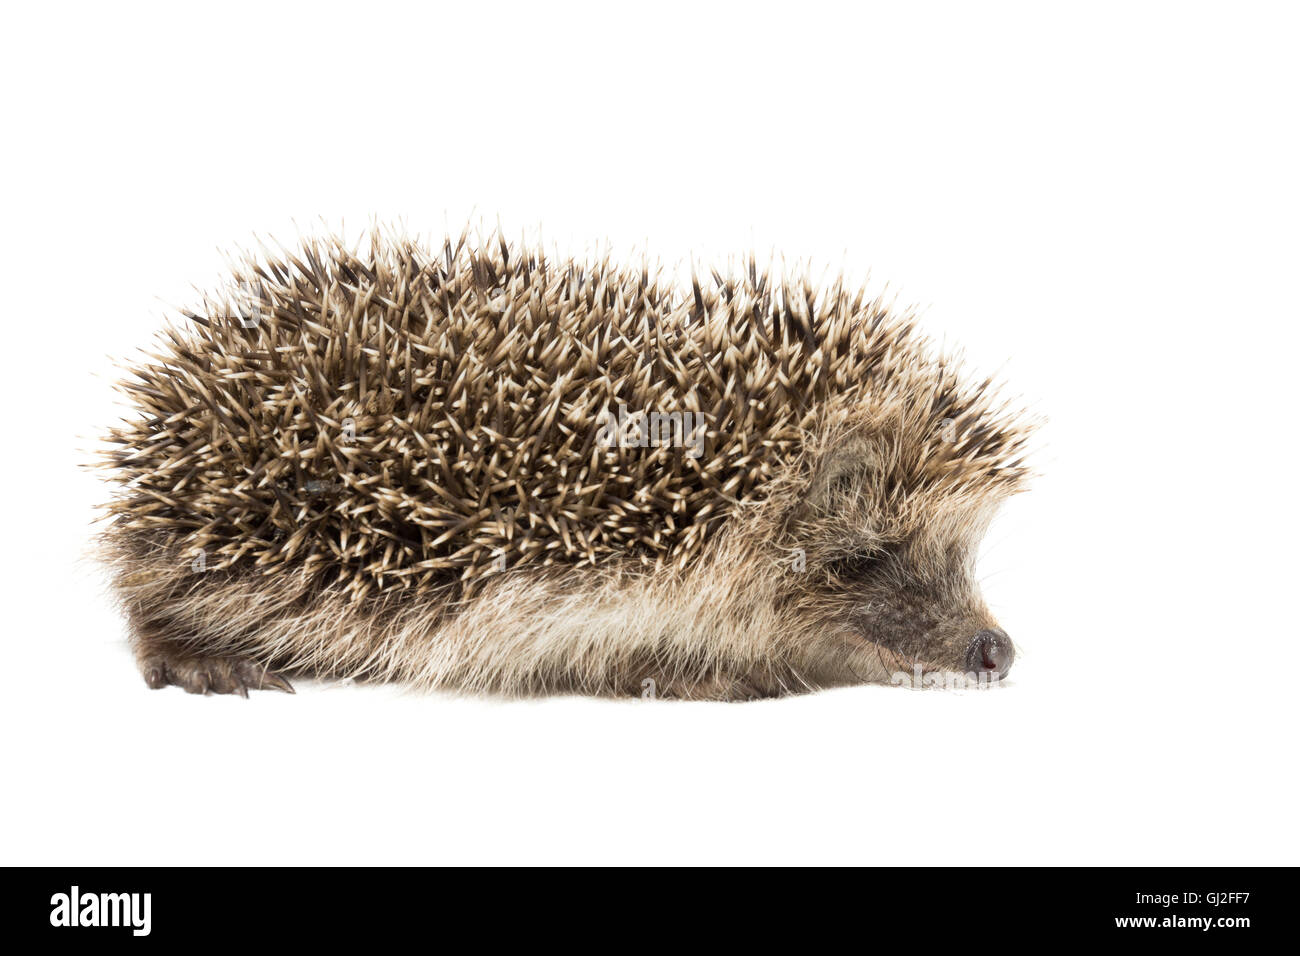 the photograph depicted a hedgehog on a white background - Stock Image